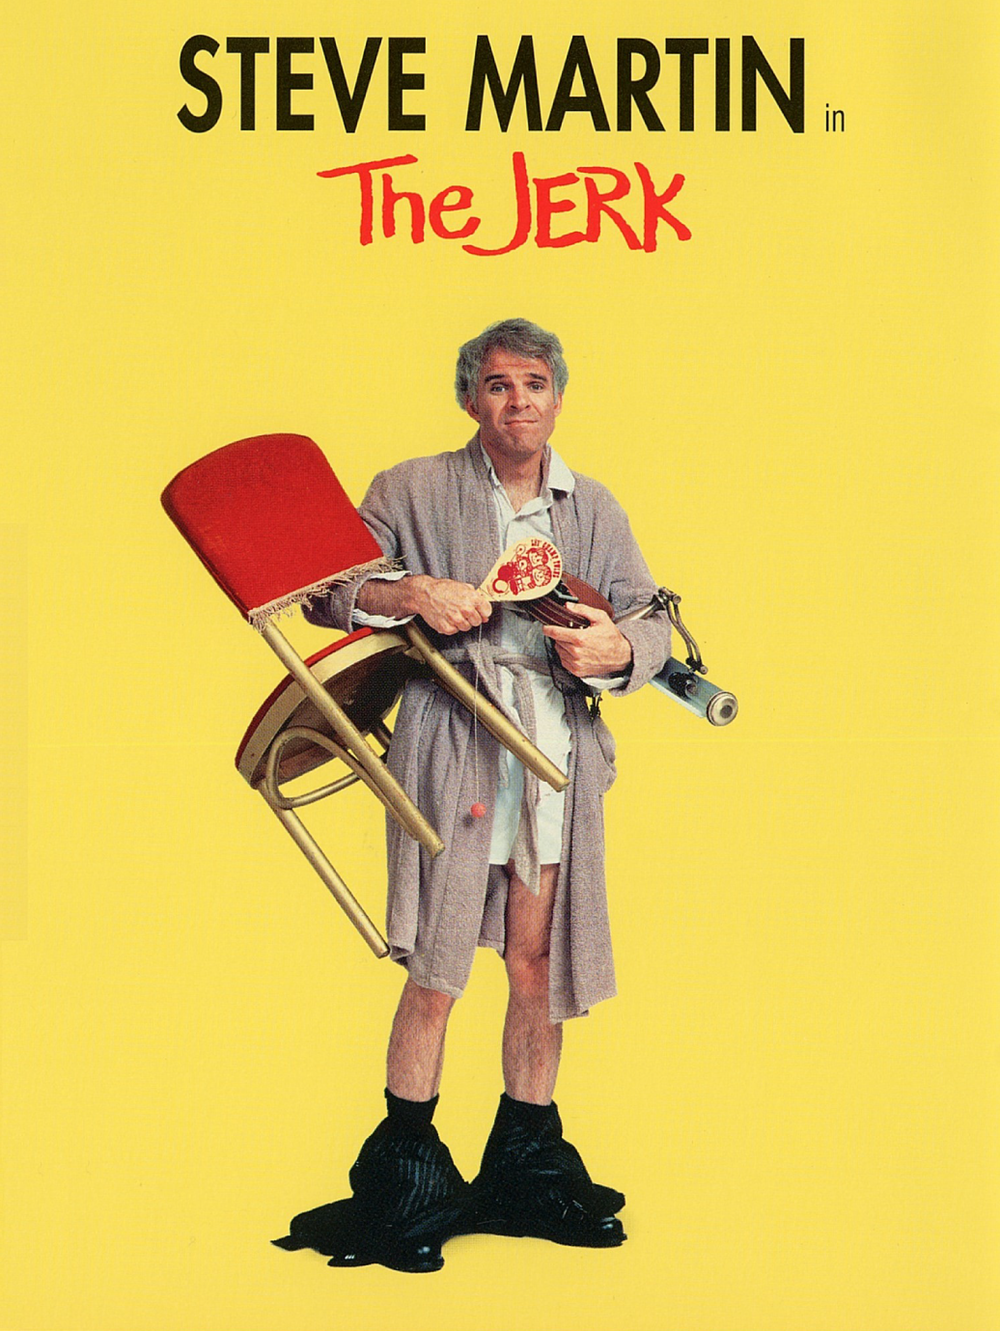 The-Jerk-Movie-Wallpapers-1.jpg